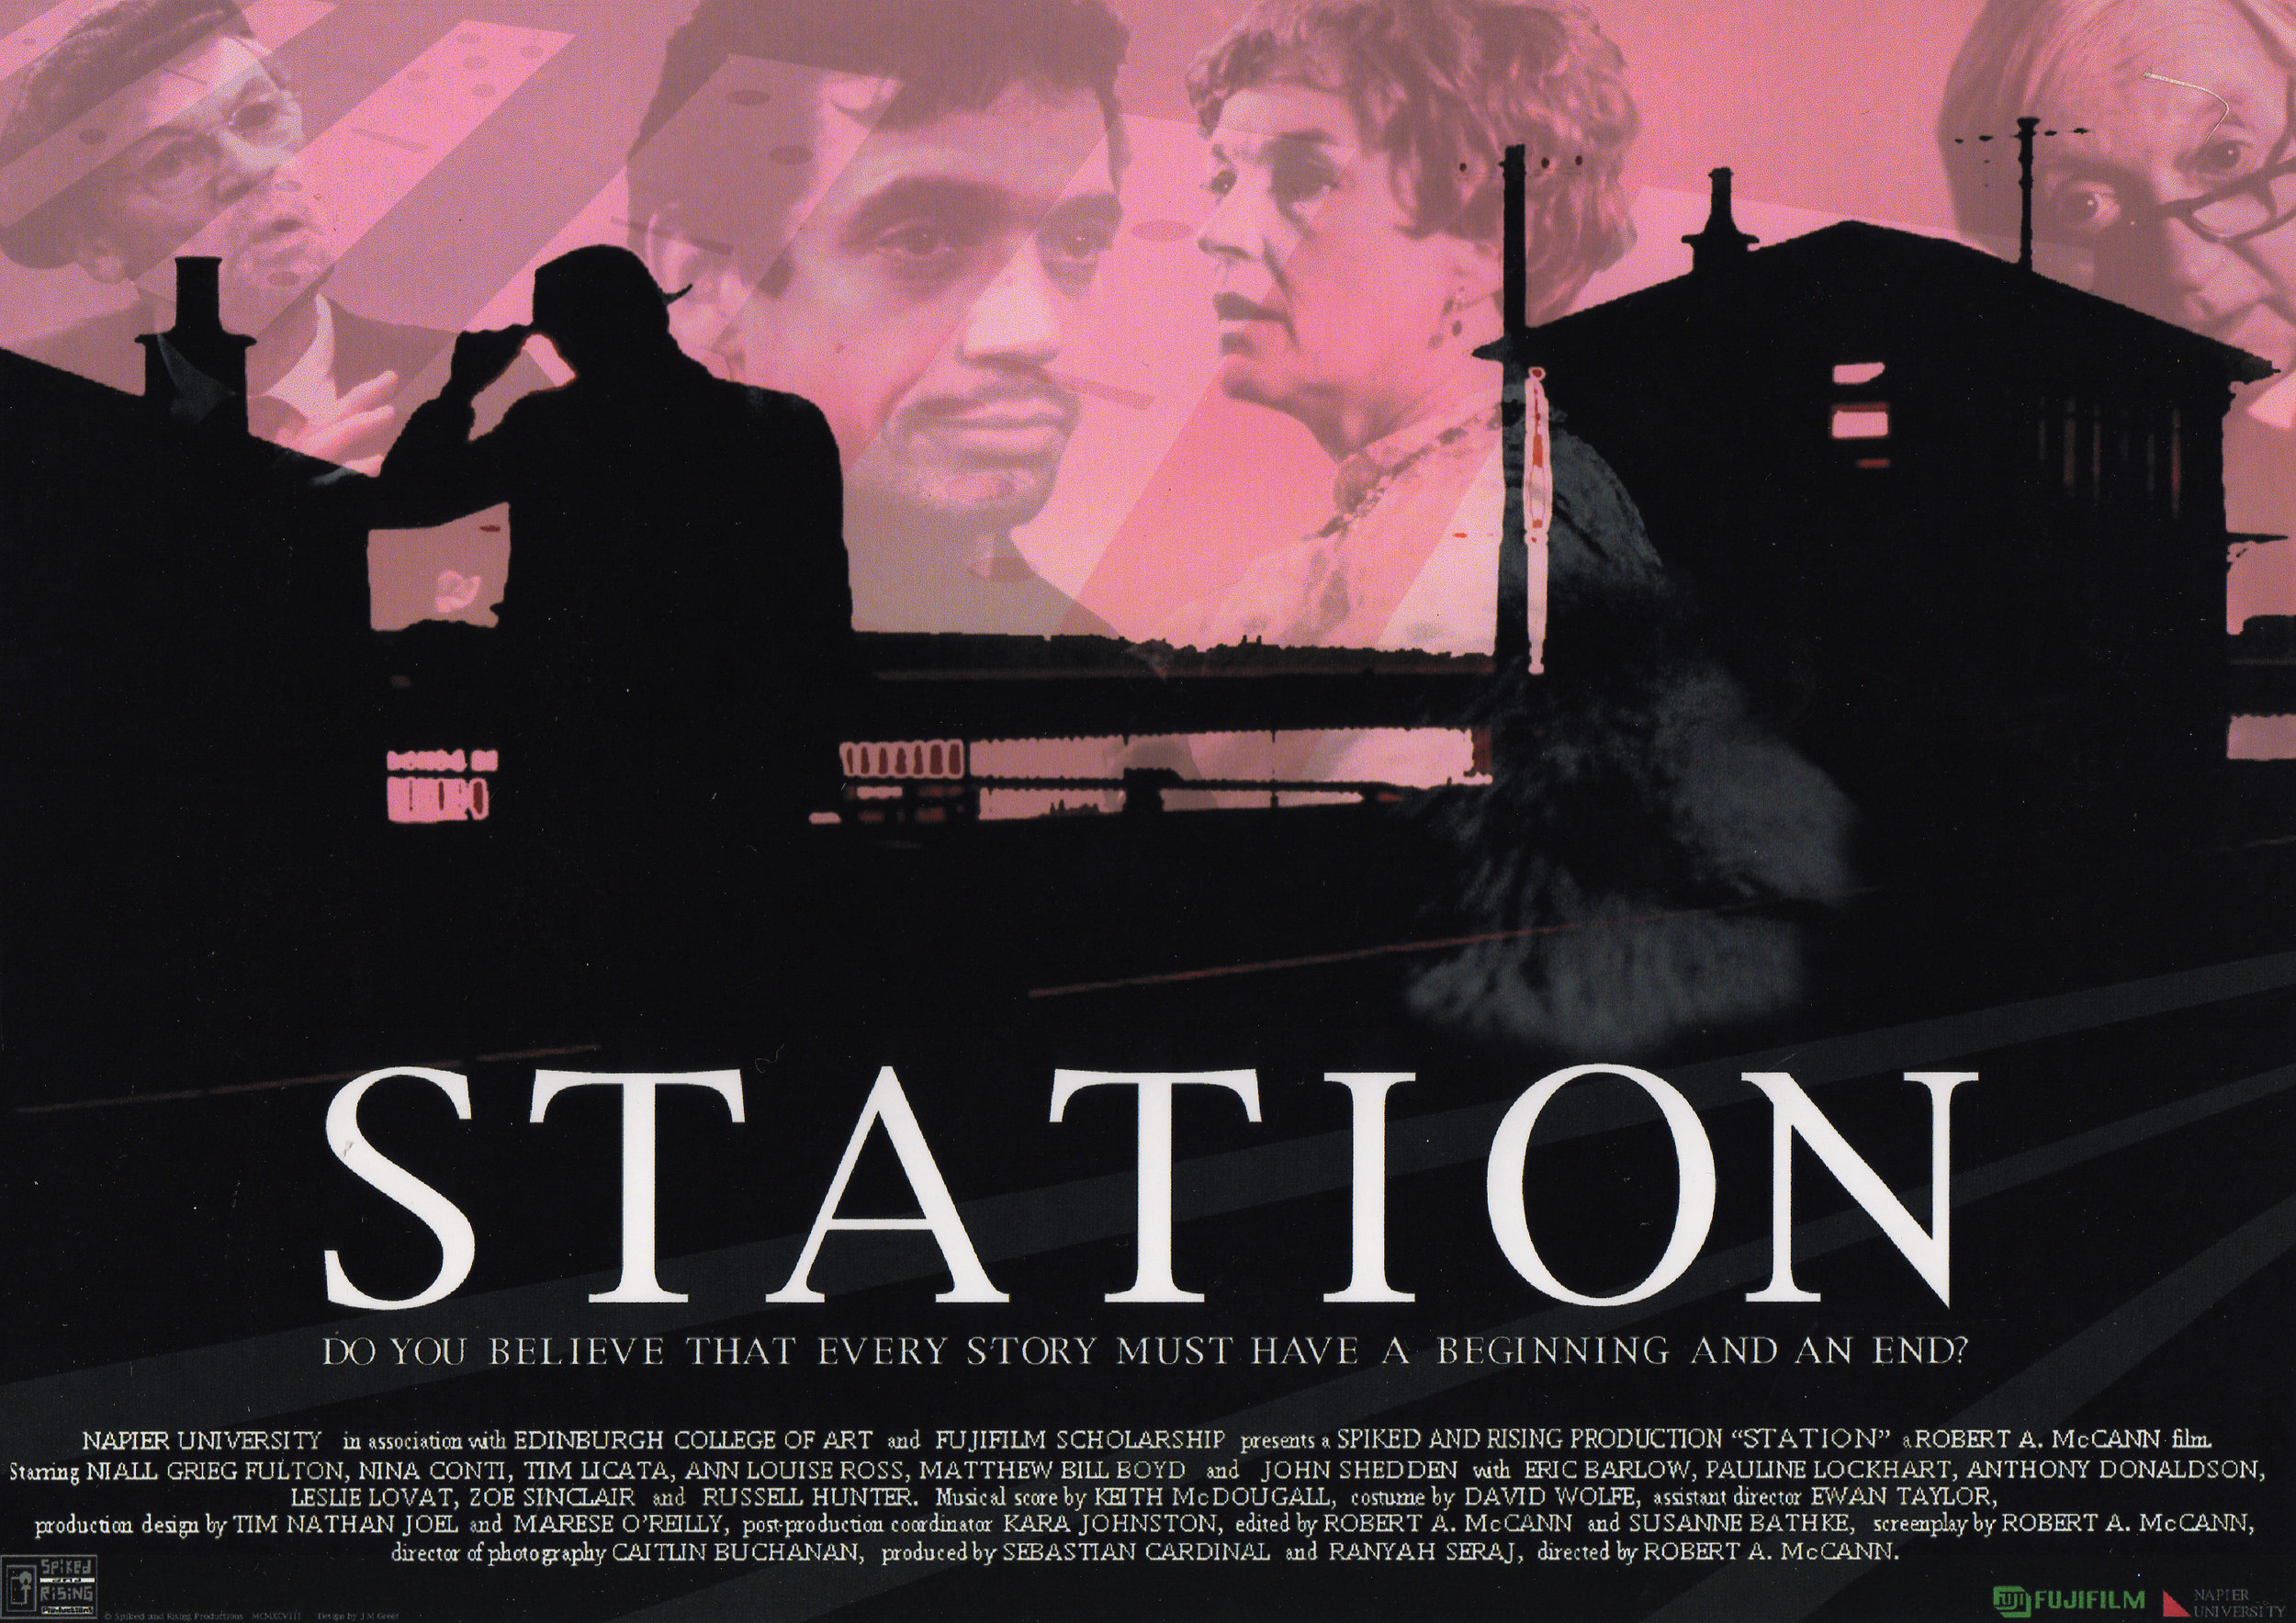 Station poster image - photo.jpg